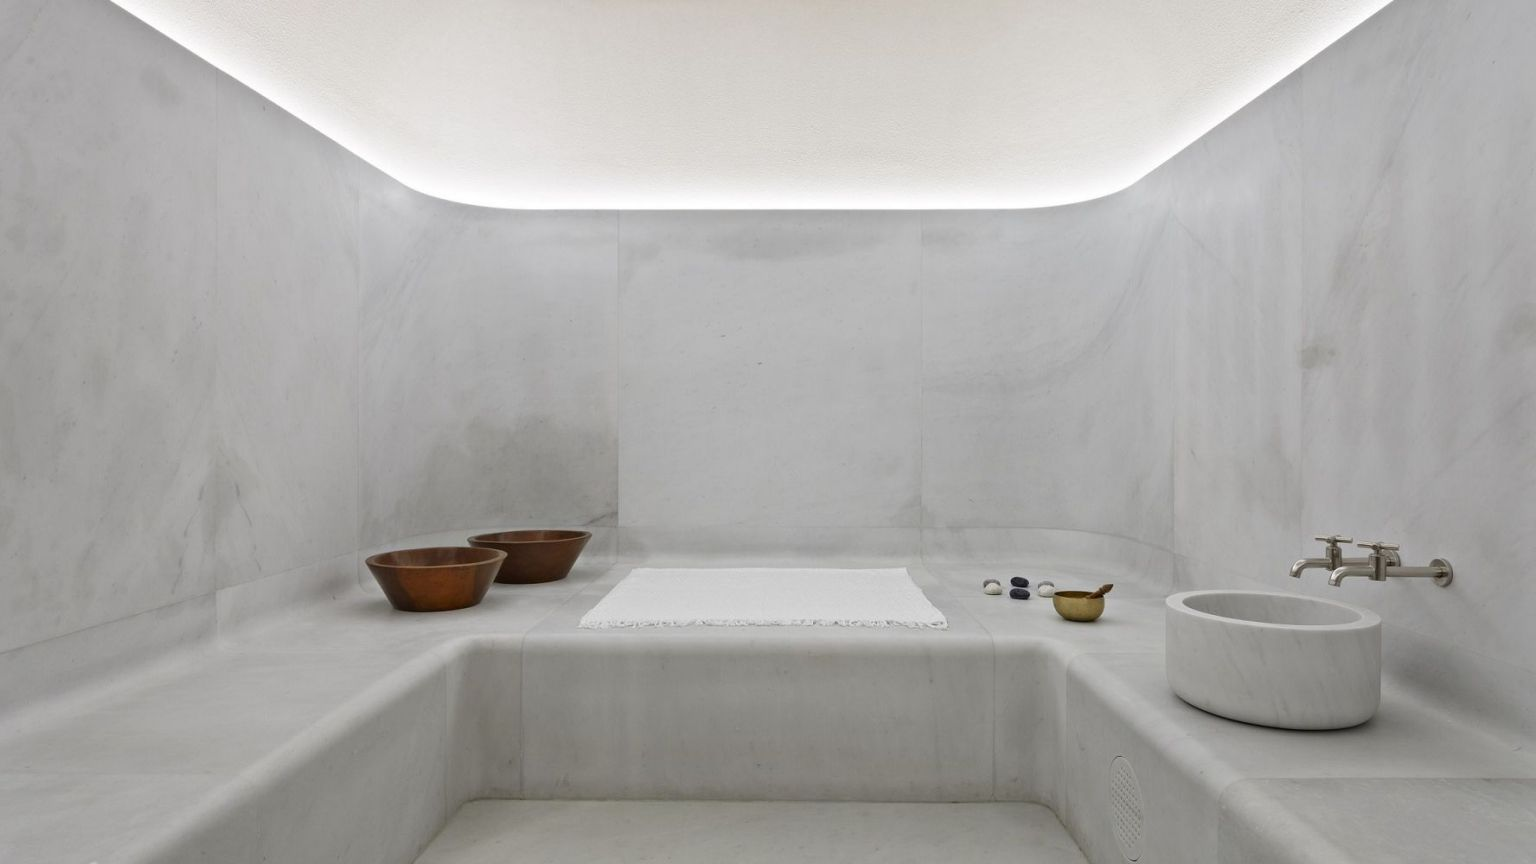 Akasha Holistic Wellbeing Centre at Hotel Cafe Royal hammam steamroom